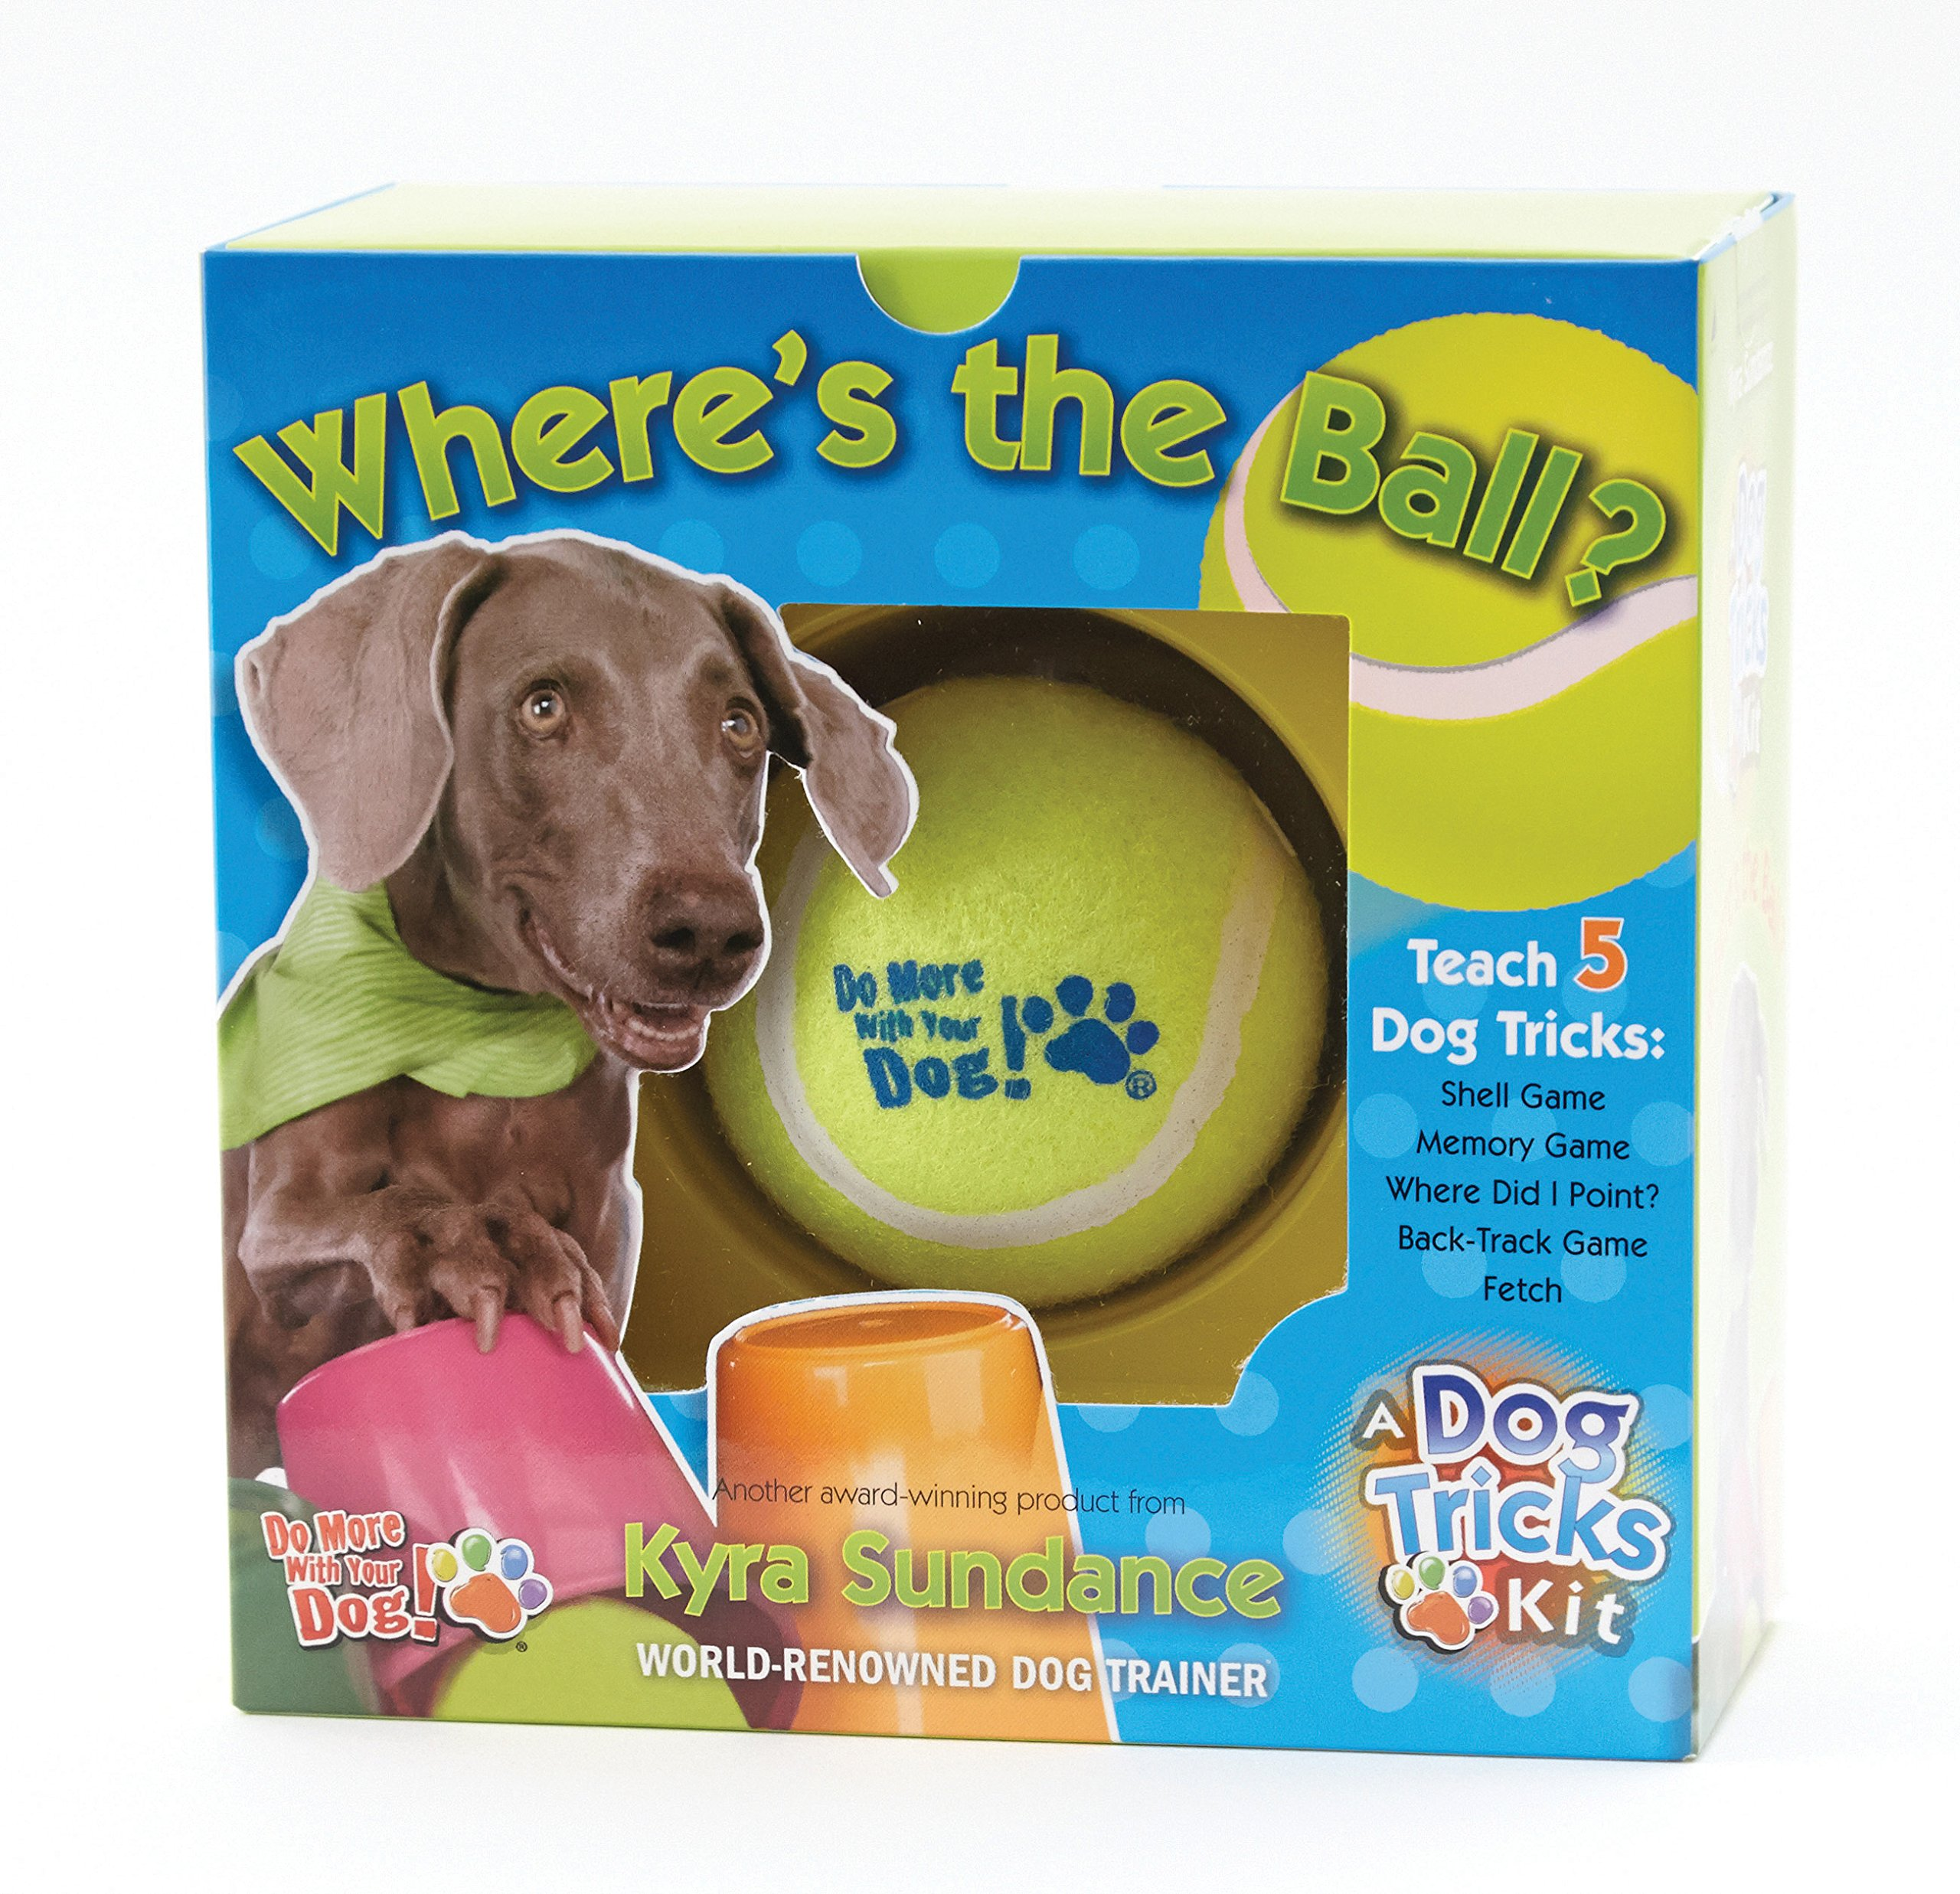 Download Where's the Ball, A Dog Tricks Kit: Engage, Challenge, and Bond with Your Dog PDF